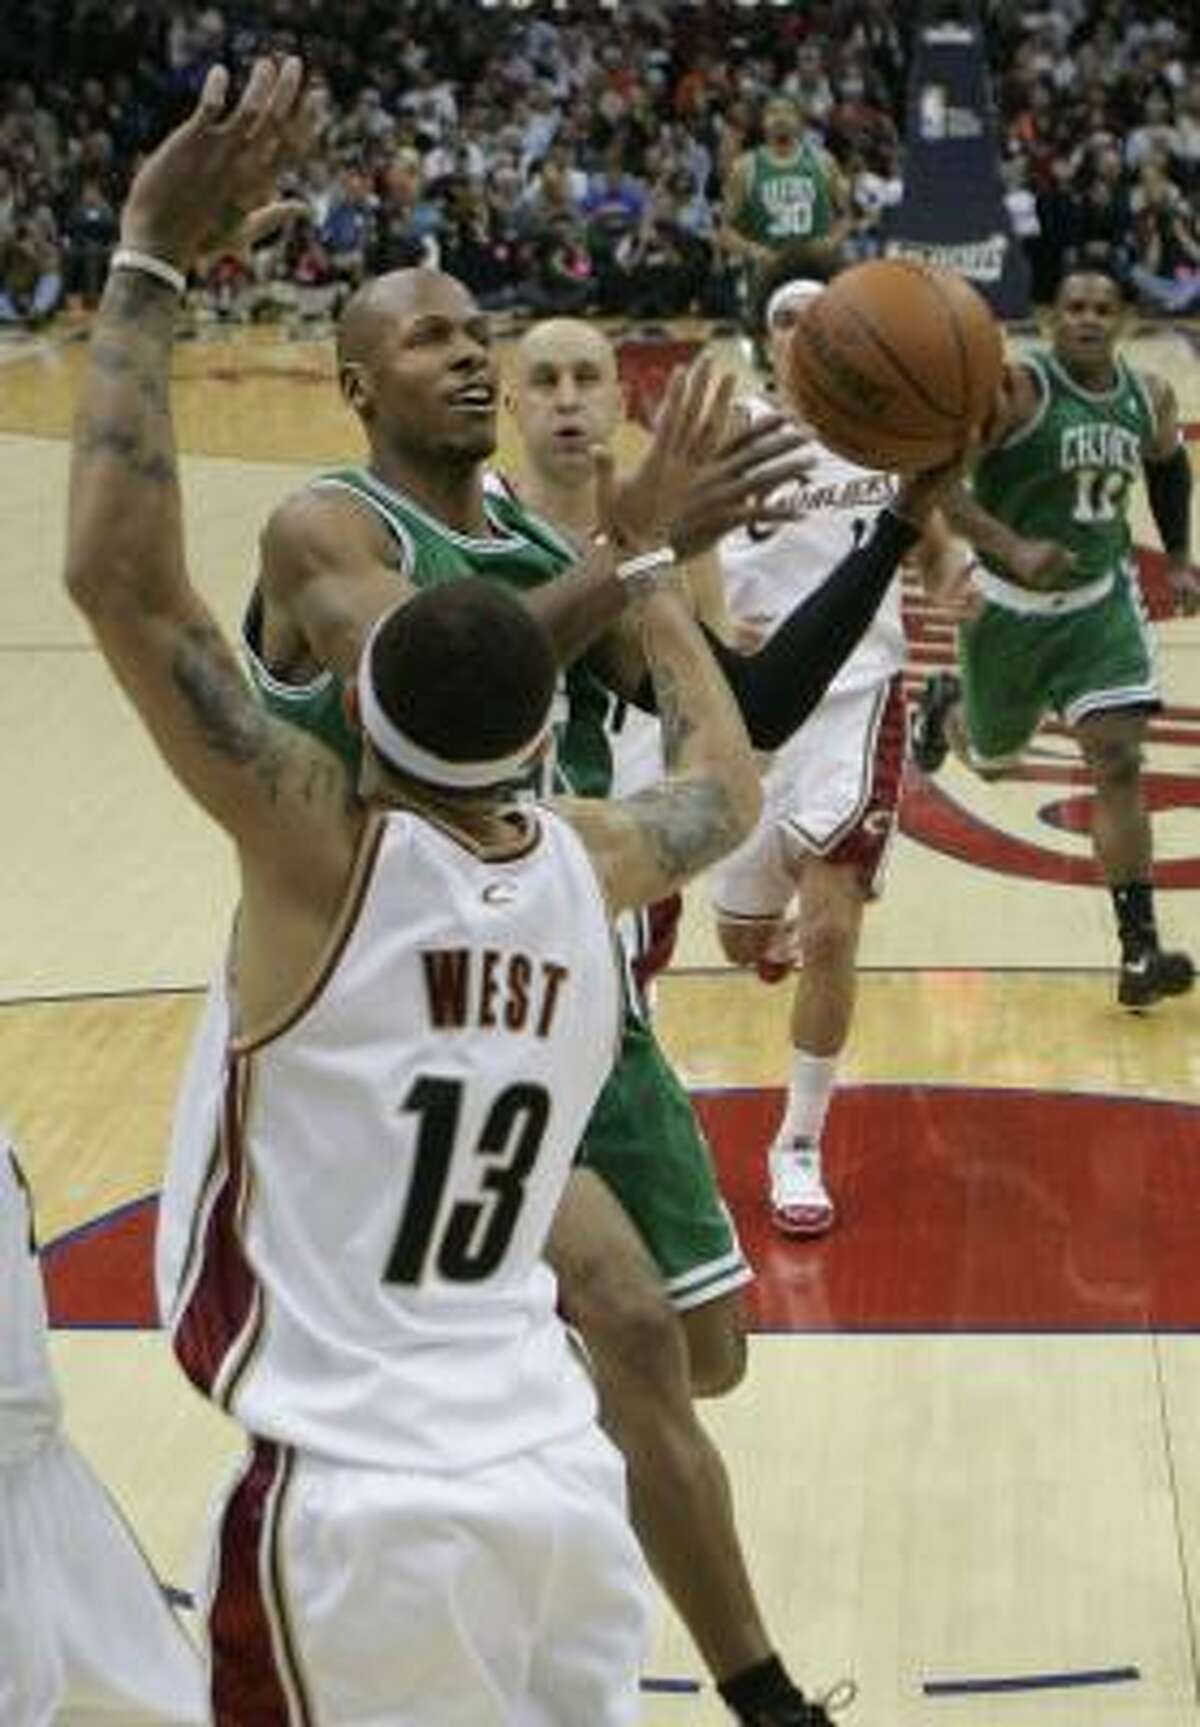 Celtics guard Ray Allen goes up for a shot against Cavaliers guard Delonte West. Allen finished as the game's leading scorer with 25 points.